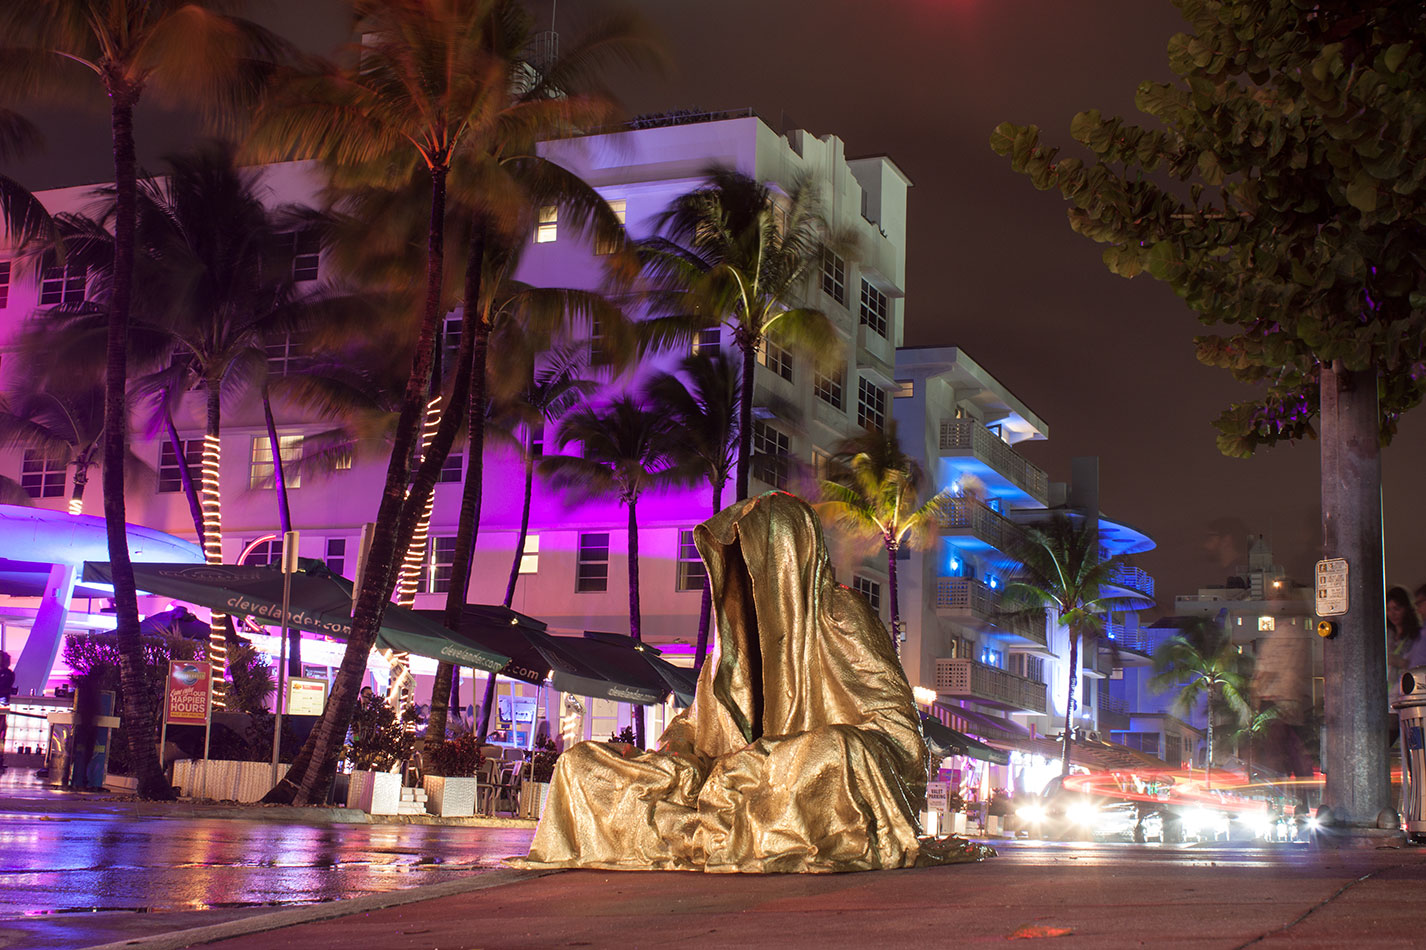 public-art-basel-miami-beach-fair-usa-florida-bass-museum-guardians-of-time-manfred-kili-kielnhofer-contemporary-fine-art-modern-arts-design-antiques-sculpture-6626